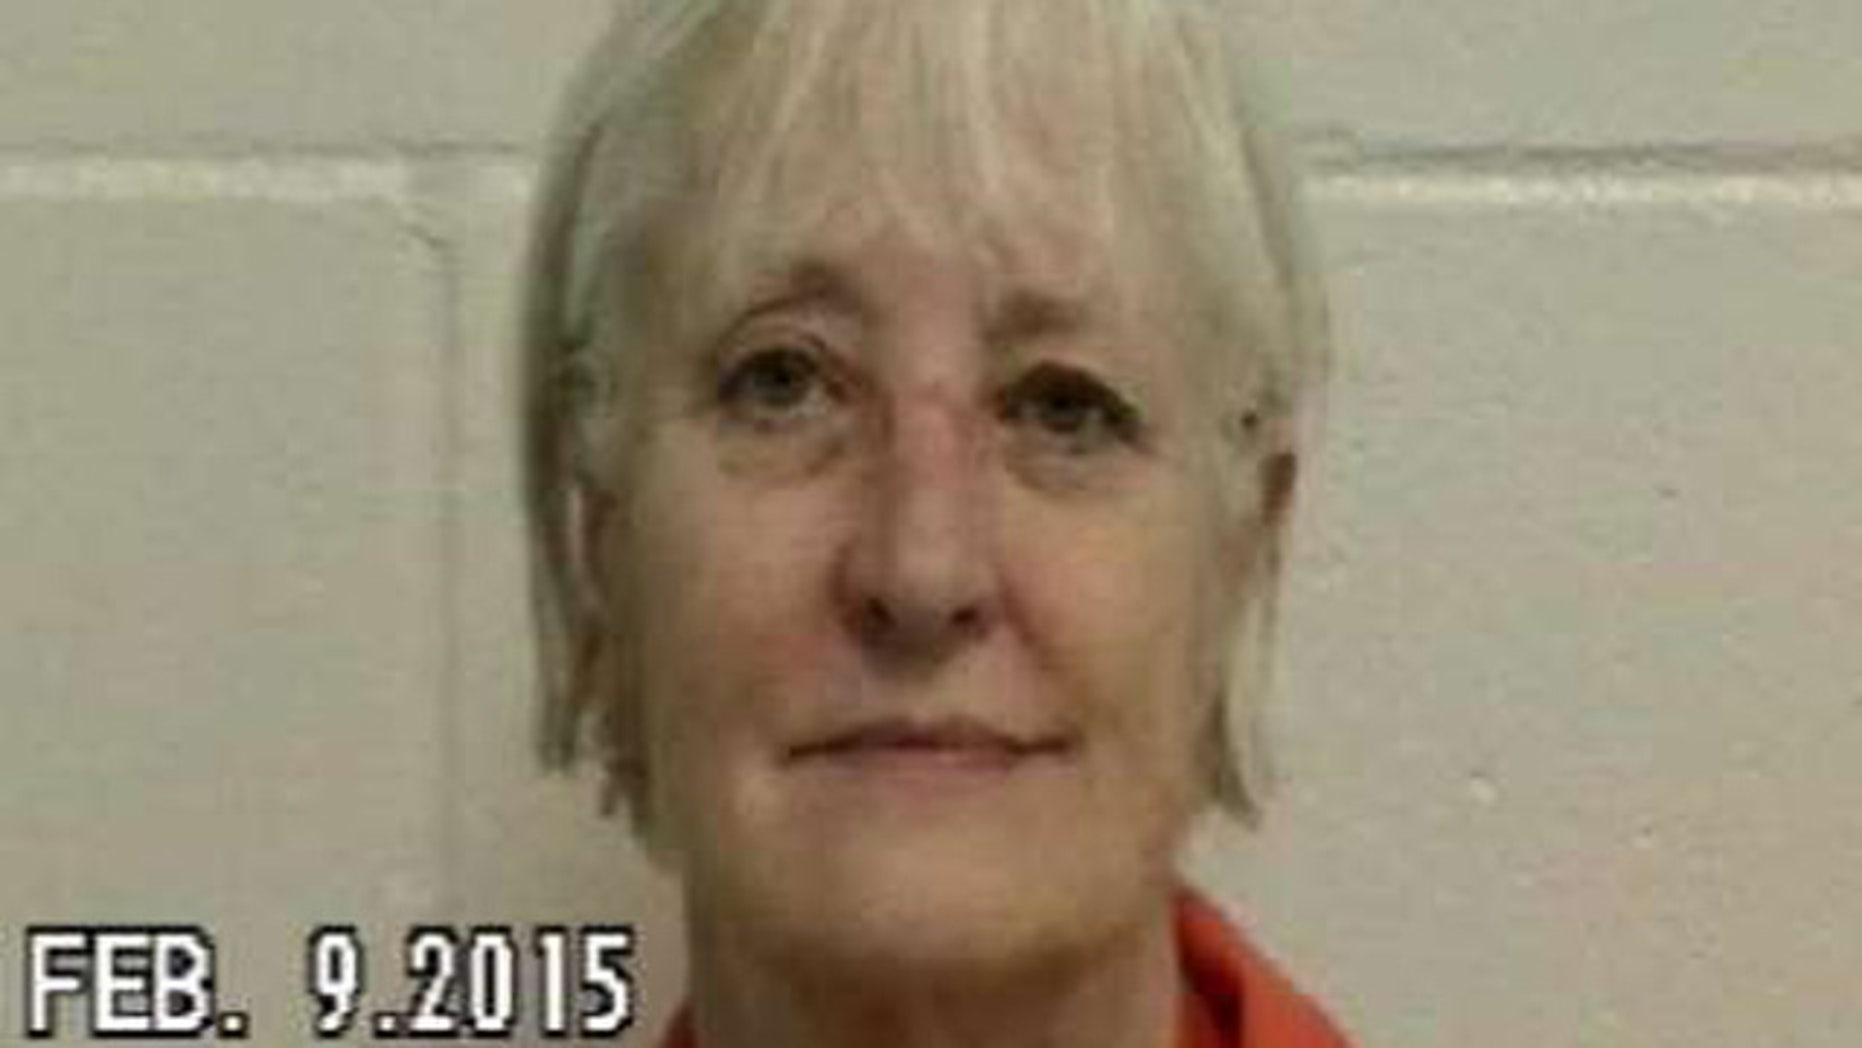 Feb. 9, 2015: This photo shows Marilyn Hartman, known as the 'Serial Stowaway' after her arrest for allegedly checking into a hotel under a false name after she took a flight from Minnesota to Florida without a ticket. (Nassau County Sheriff's Office)